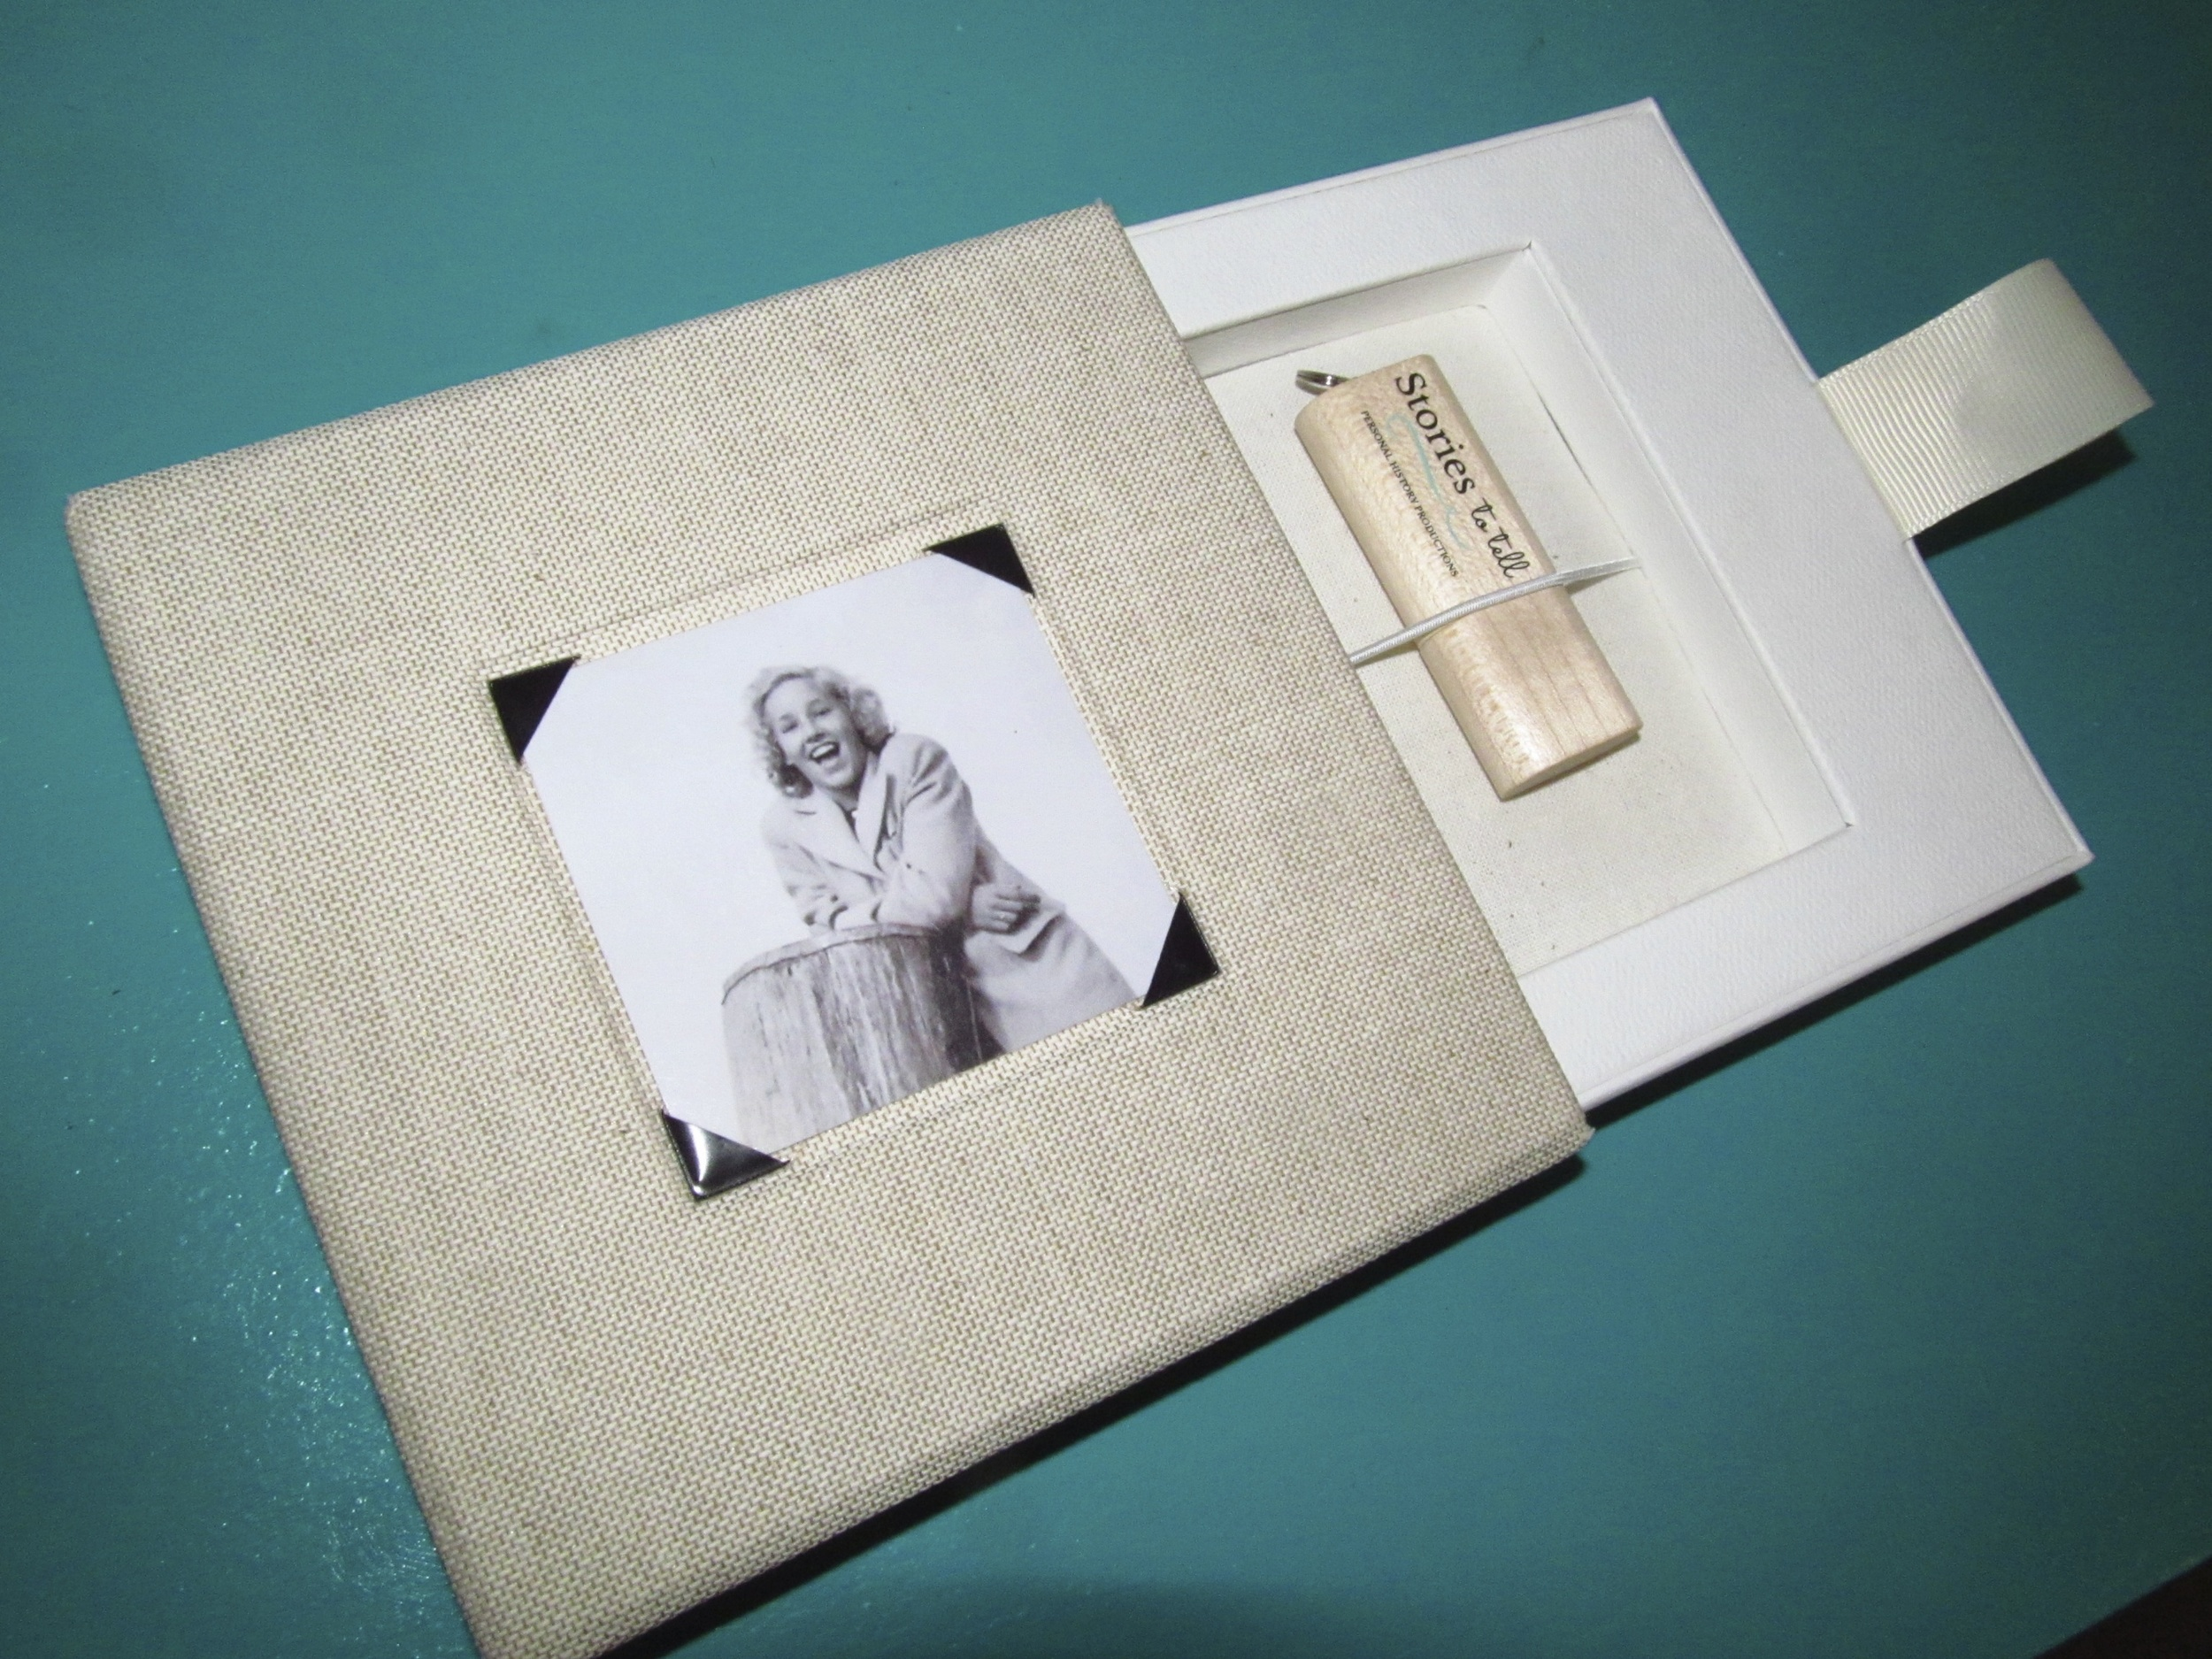 You know it's special! An audio memoir on bamboo USB housed in a linen case.